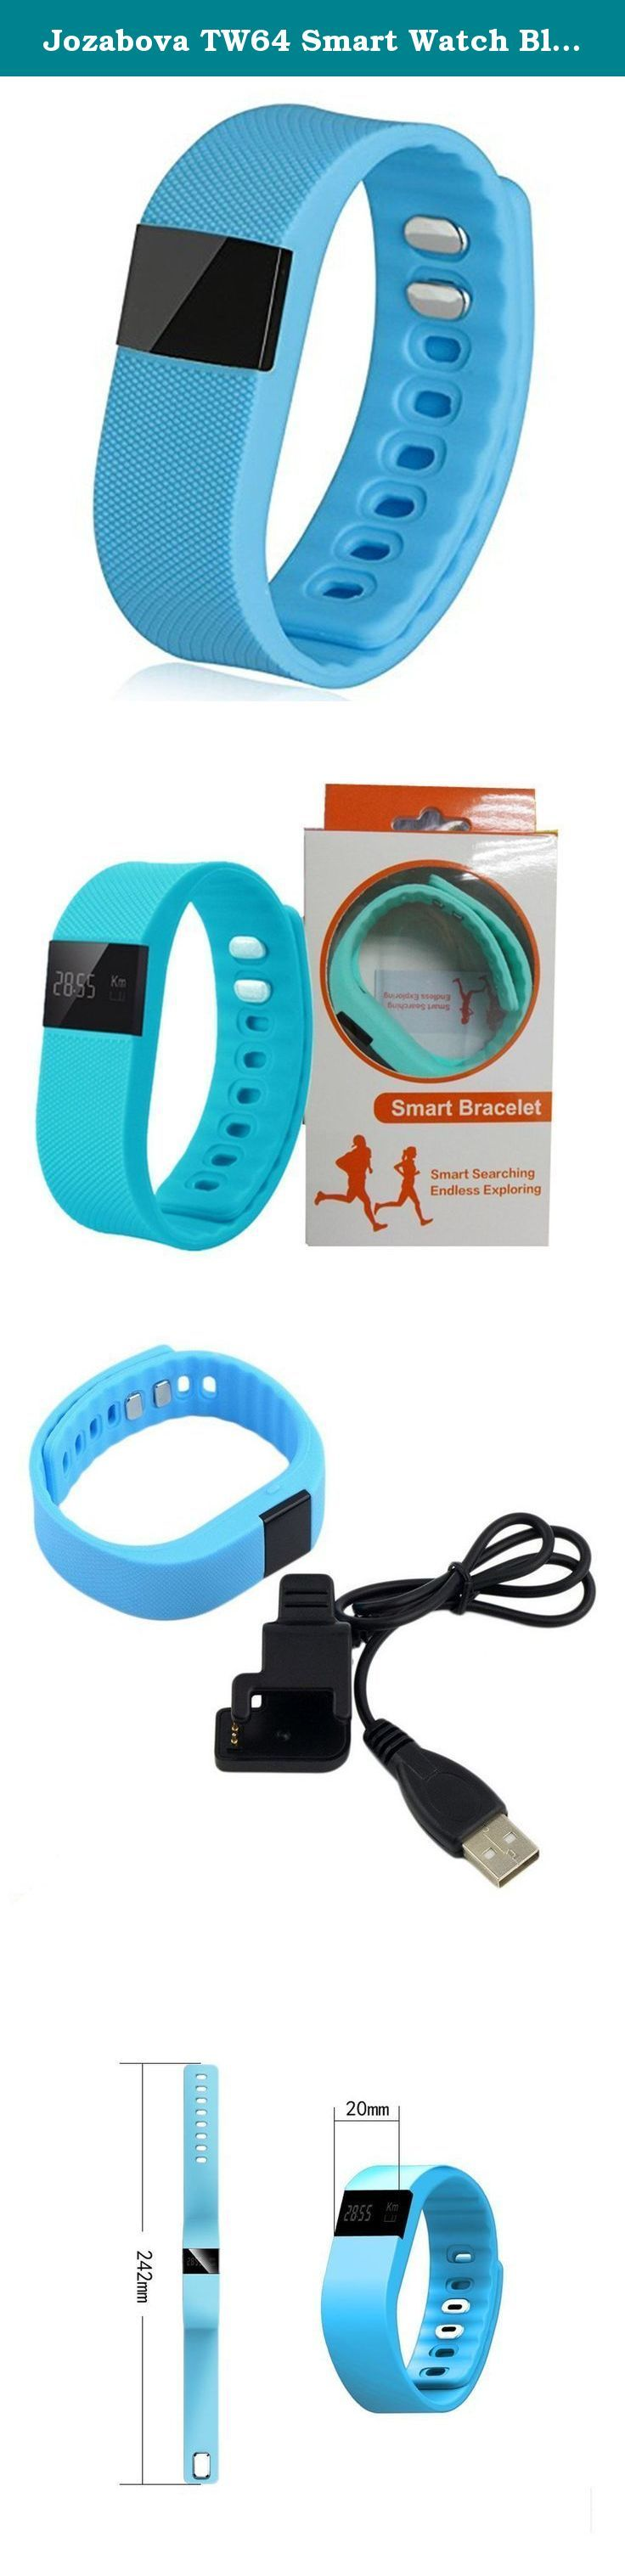 Jozabova TW64 Smart Watch Bluetooth Watch Bracelet Smart band Calorie Counter Wireless Pedometer Sport Activity Tracker For iPhone Samsung Android IOS Phone (Blue). Standby time: 15 days. Your healthy monitor: Help you to keep a good habit,health and happiness follow you. Love life walking from now on: TW64 will record your step,distance and calorie,which can help you to set the target. Monitor your sleep:TW64 is able to detect how long you sleep,through its health software,count up your...